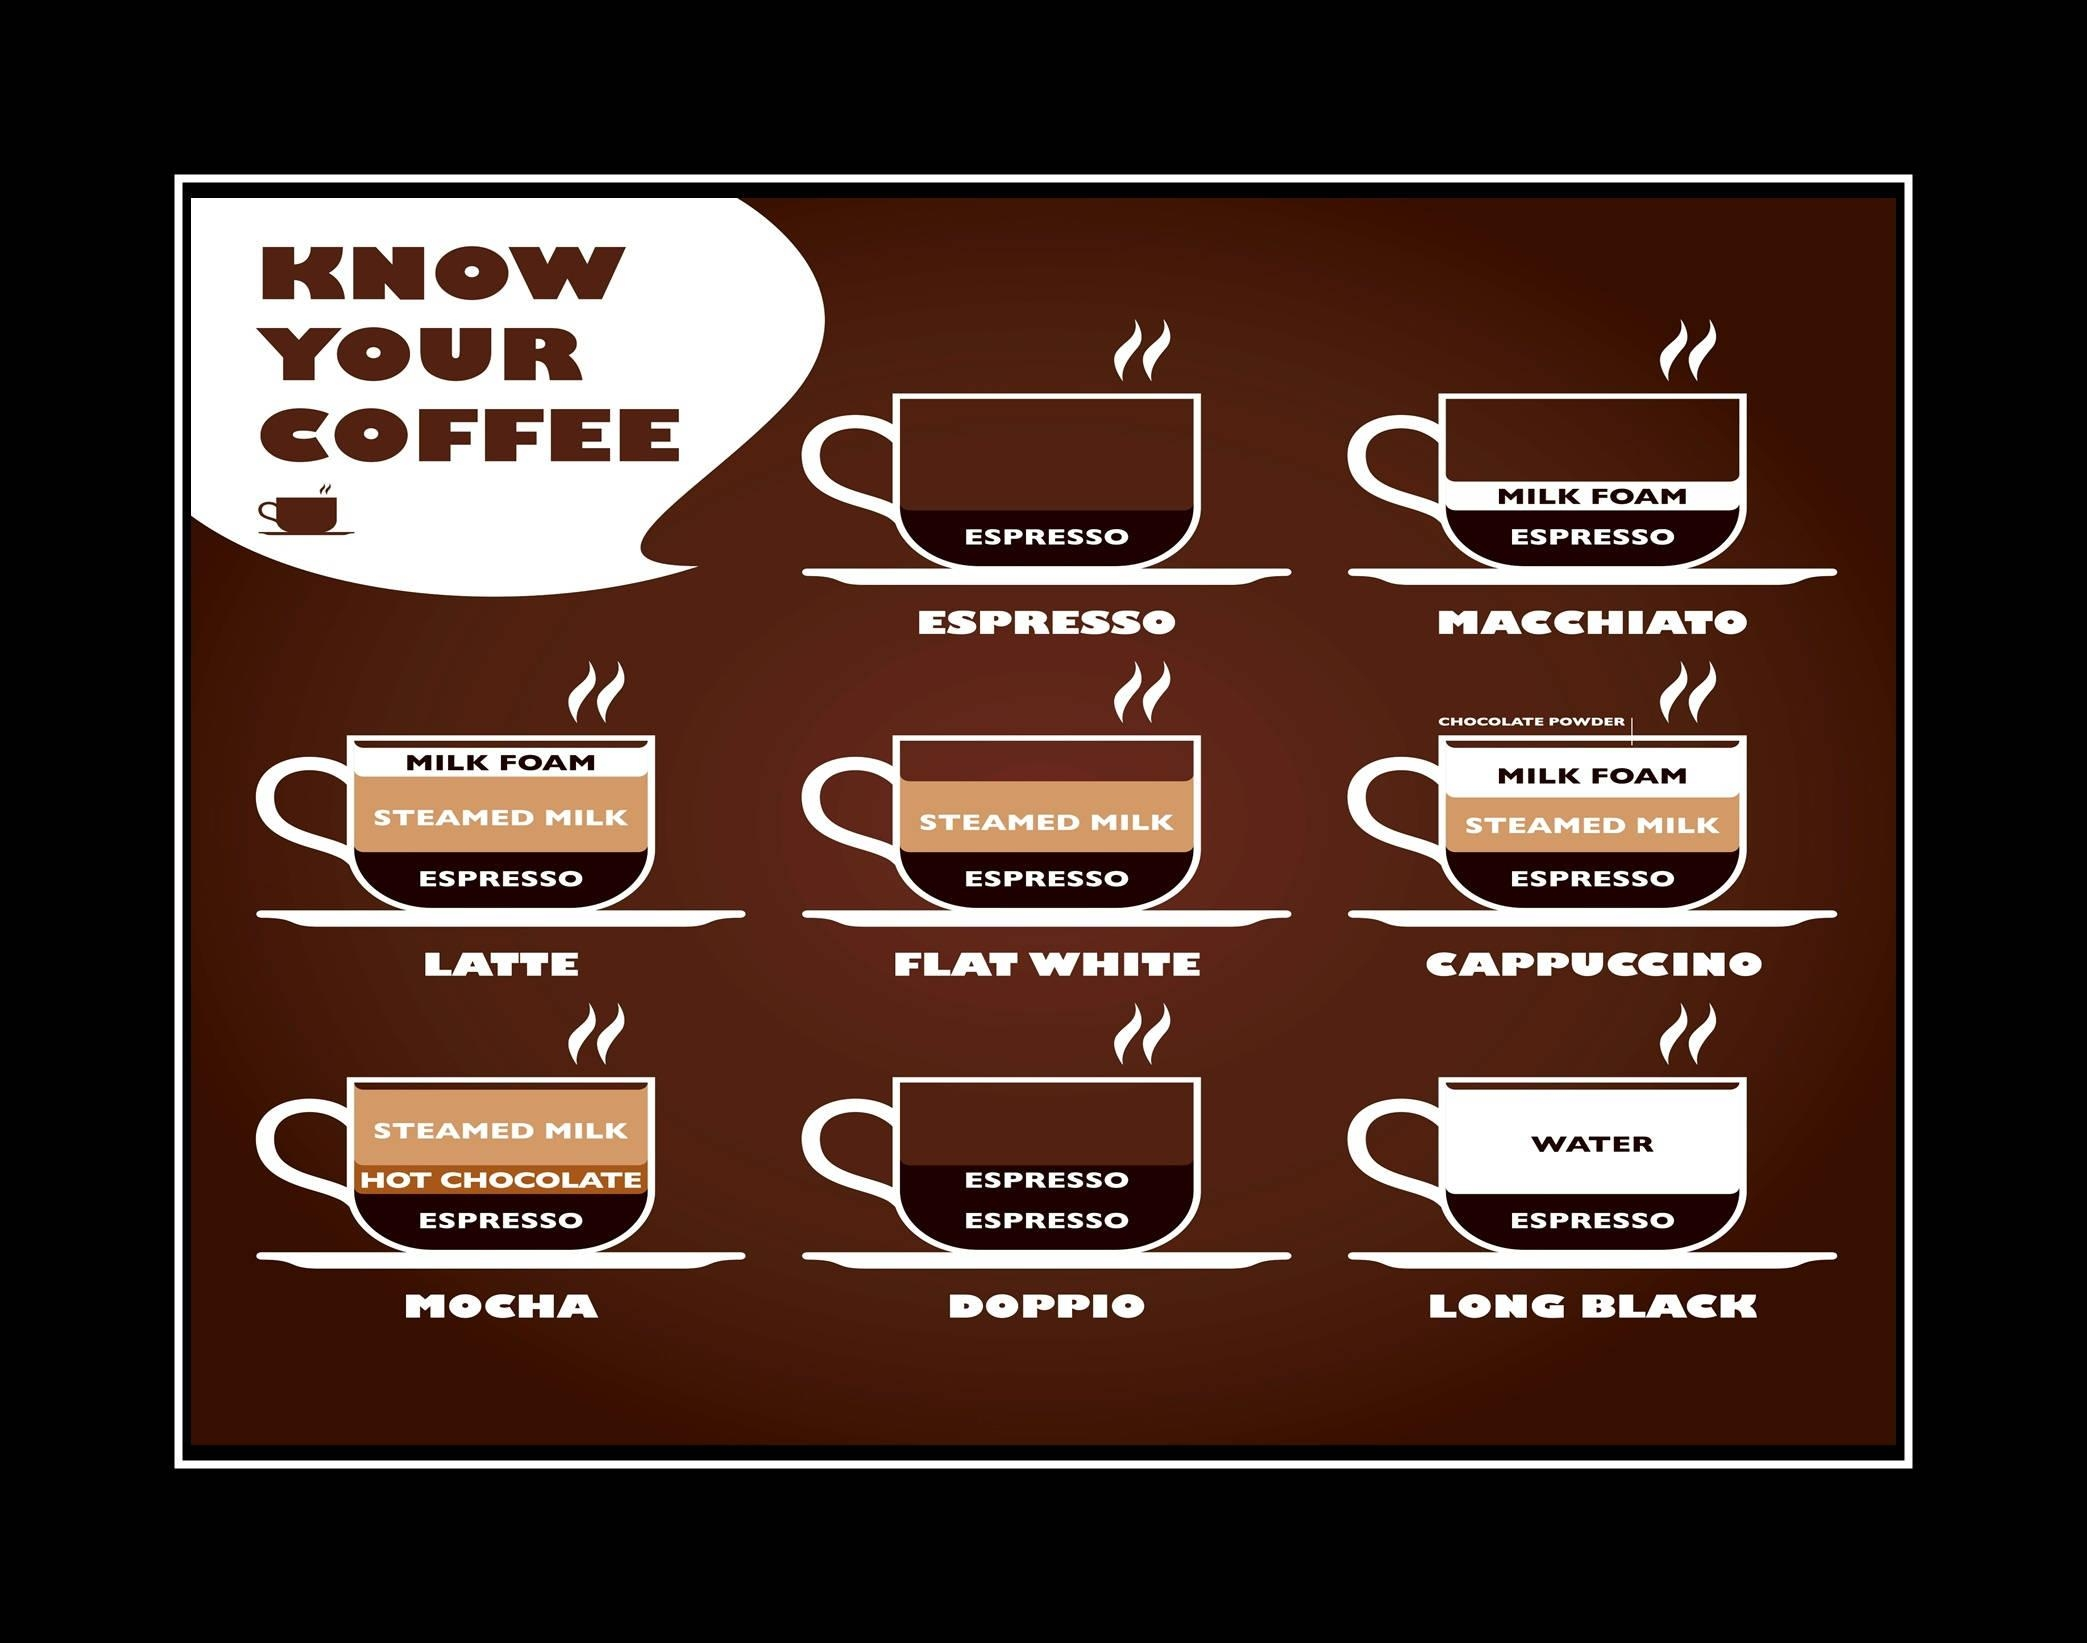 Know Your Coffee Poster, Kitchen Wall Decor, Cafe Wall Art Gift Intended For Cafe Latte Kitchen Wall Art (Image 16 of 20)